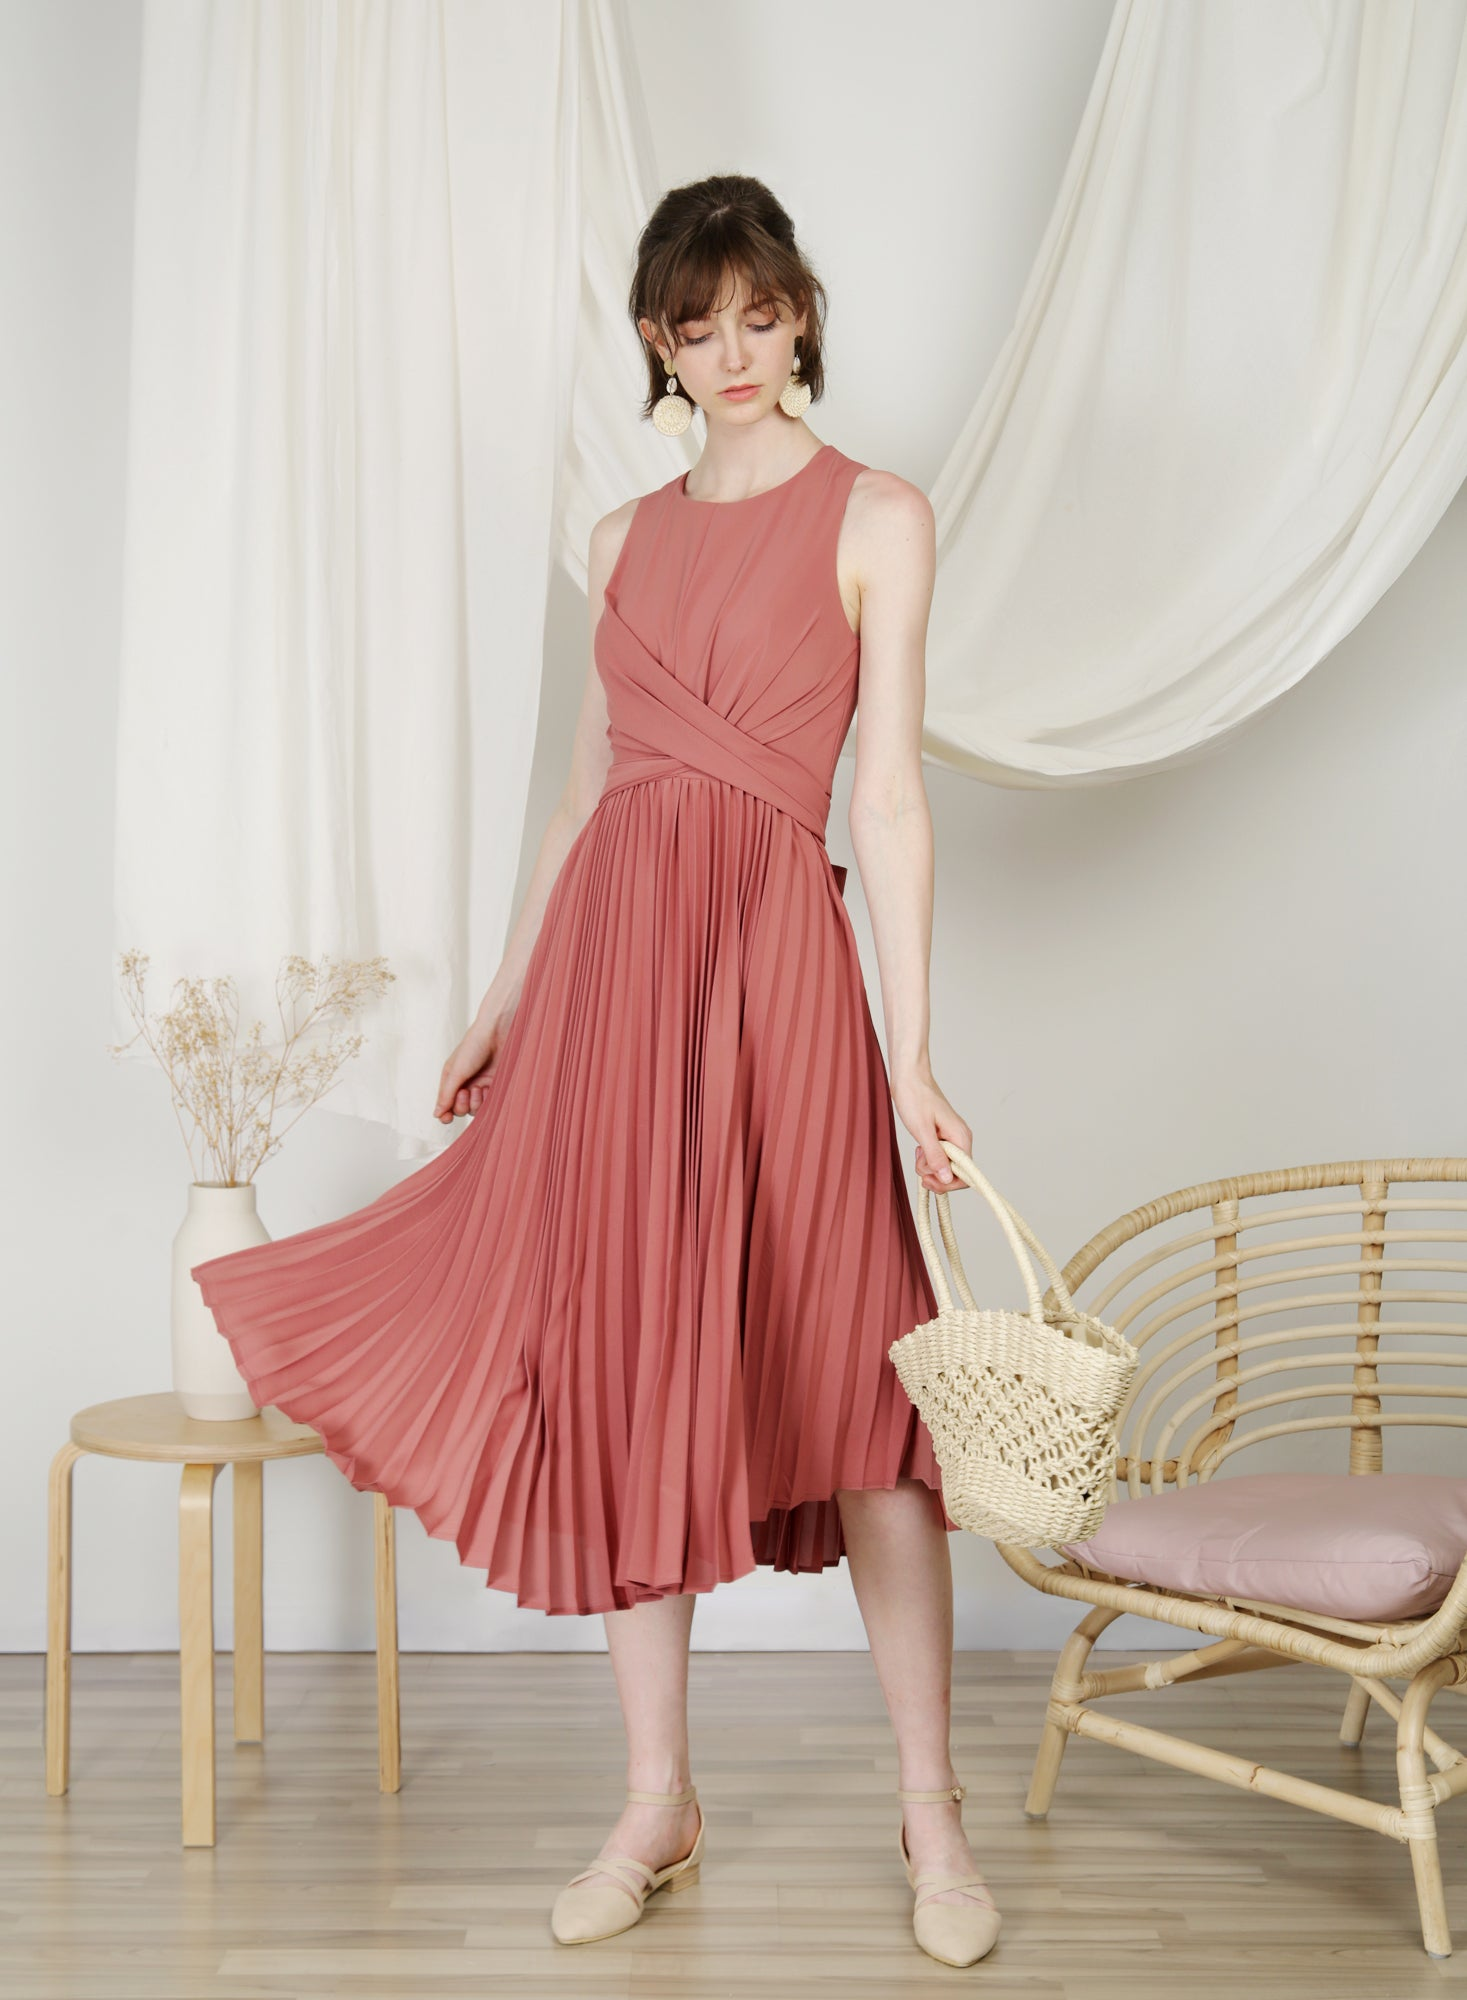 DIVINE Wrap Front Pleated Dress (Rose) at $ 48.50 only sold at And Well Dressed Online Fashion Store Singapore